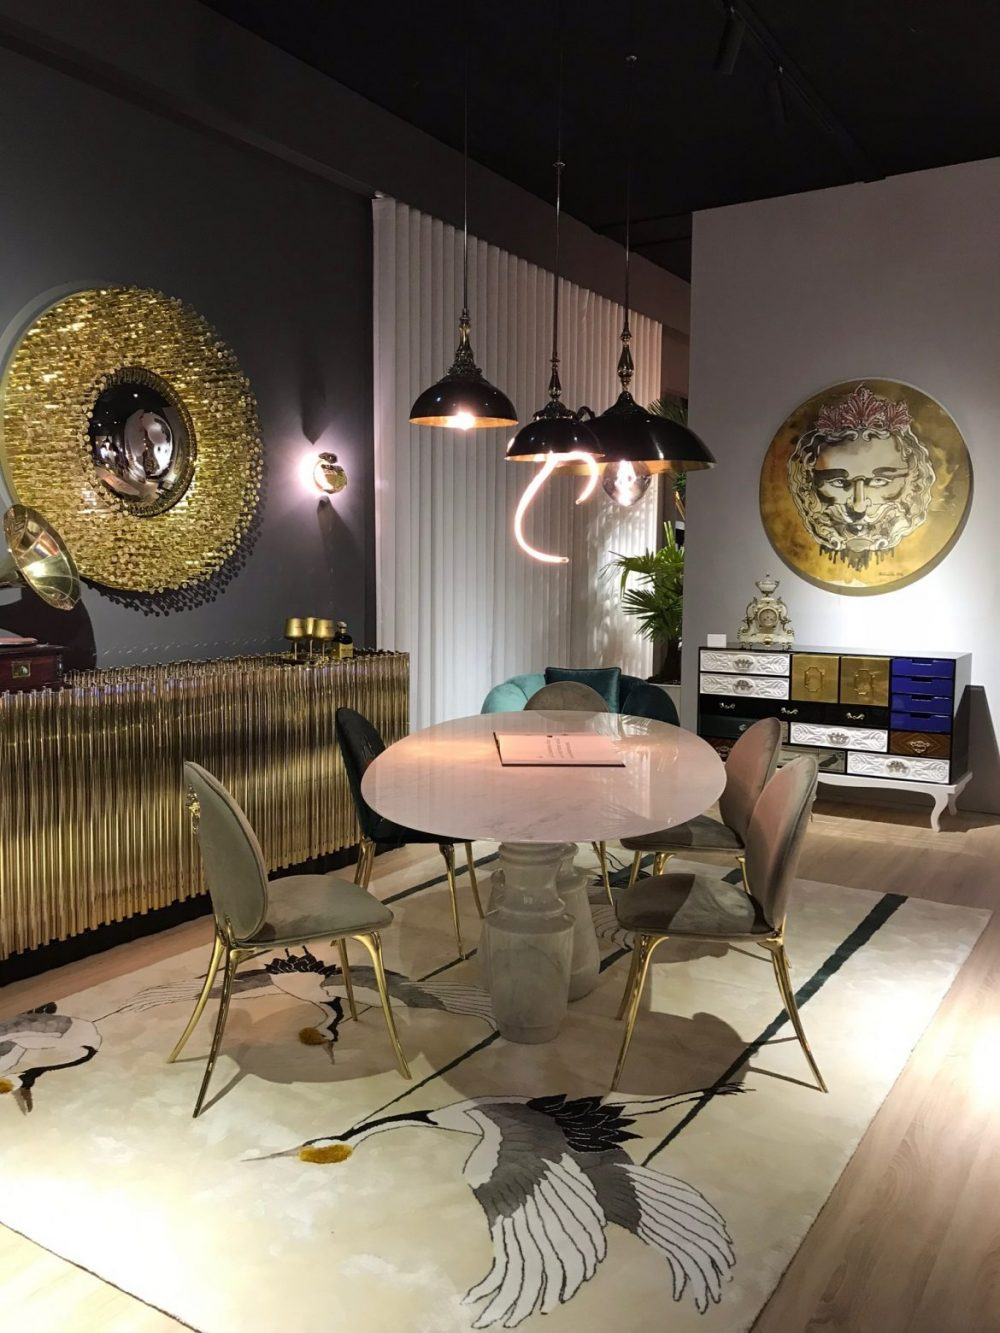 Salone Del Mobile 2019: The Top Choices Of Day 1 salone del mobile 2019 Salone Del Mobile 2019: The Top Choices Of Day 1 IMG 0309 e1554809505671